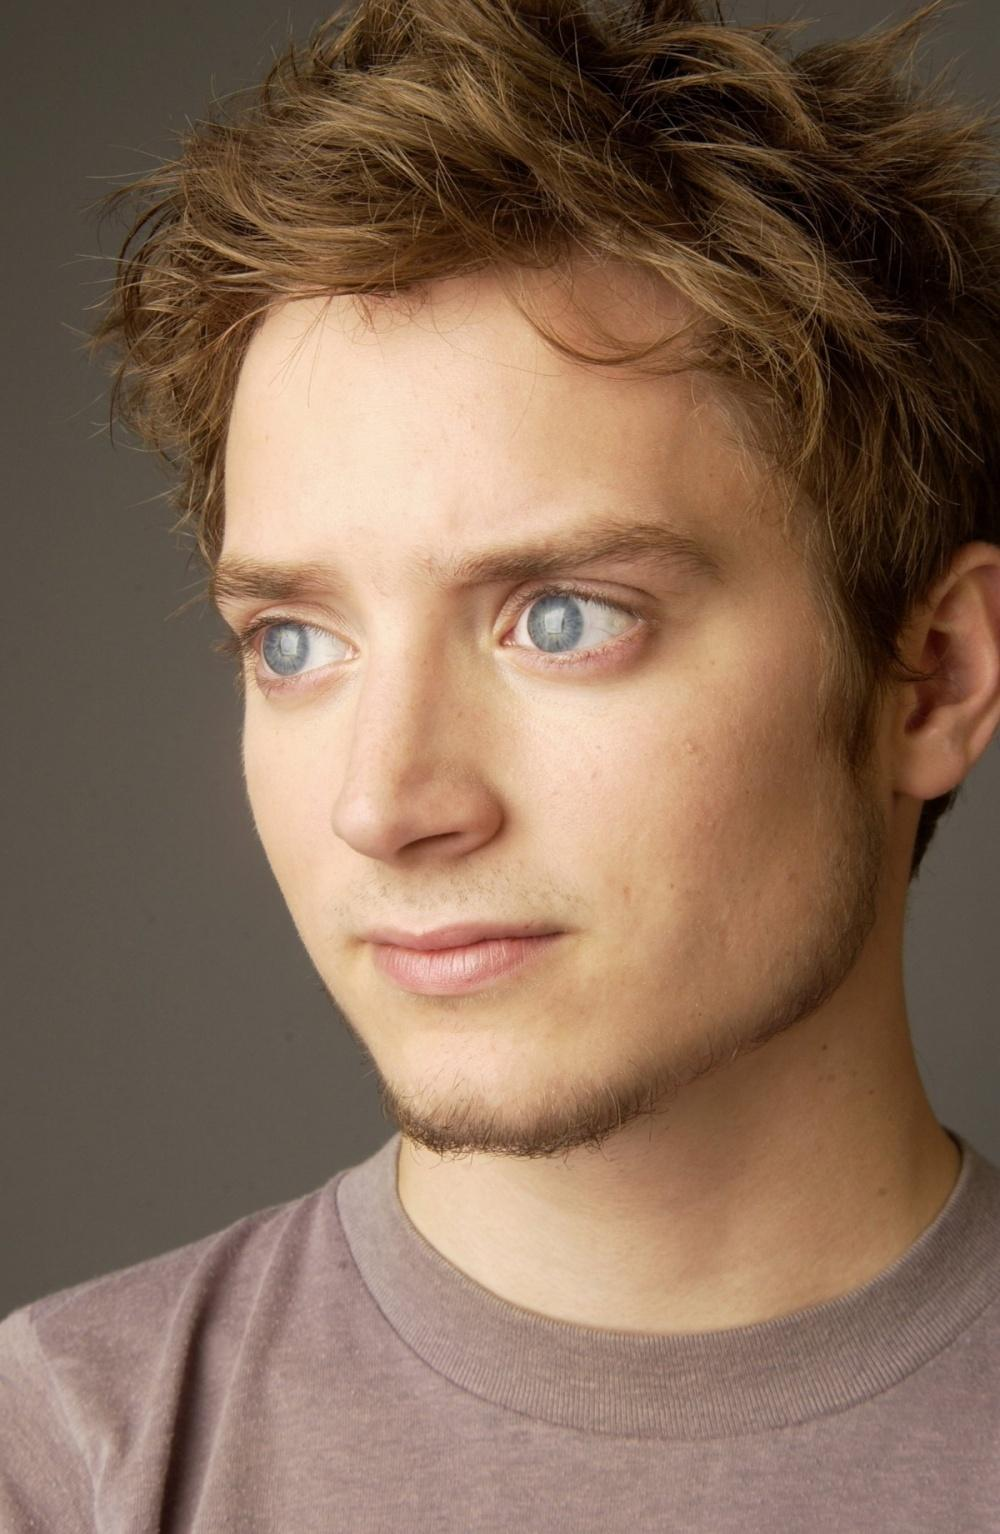 37 Celebrities Desktop Wallpapers » 931222 Elijah Wood Image